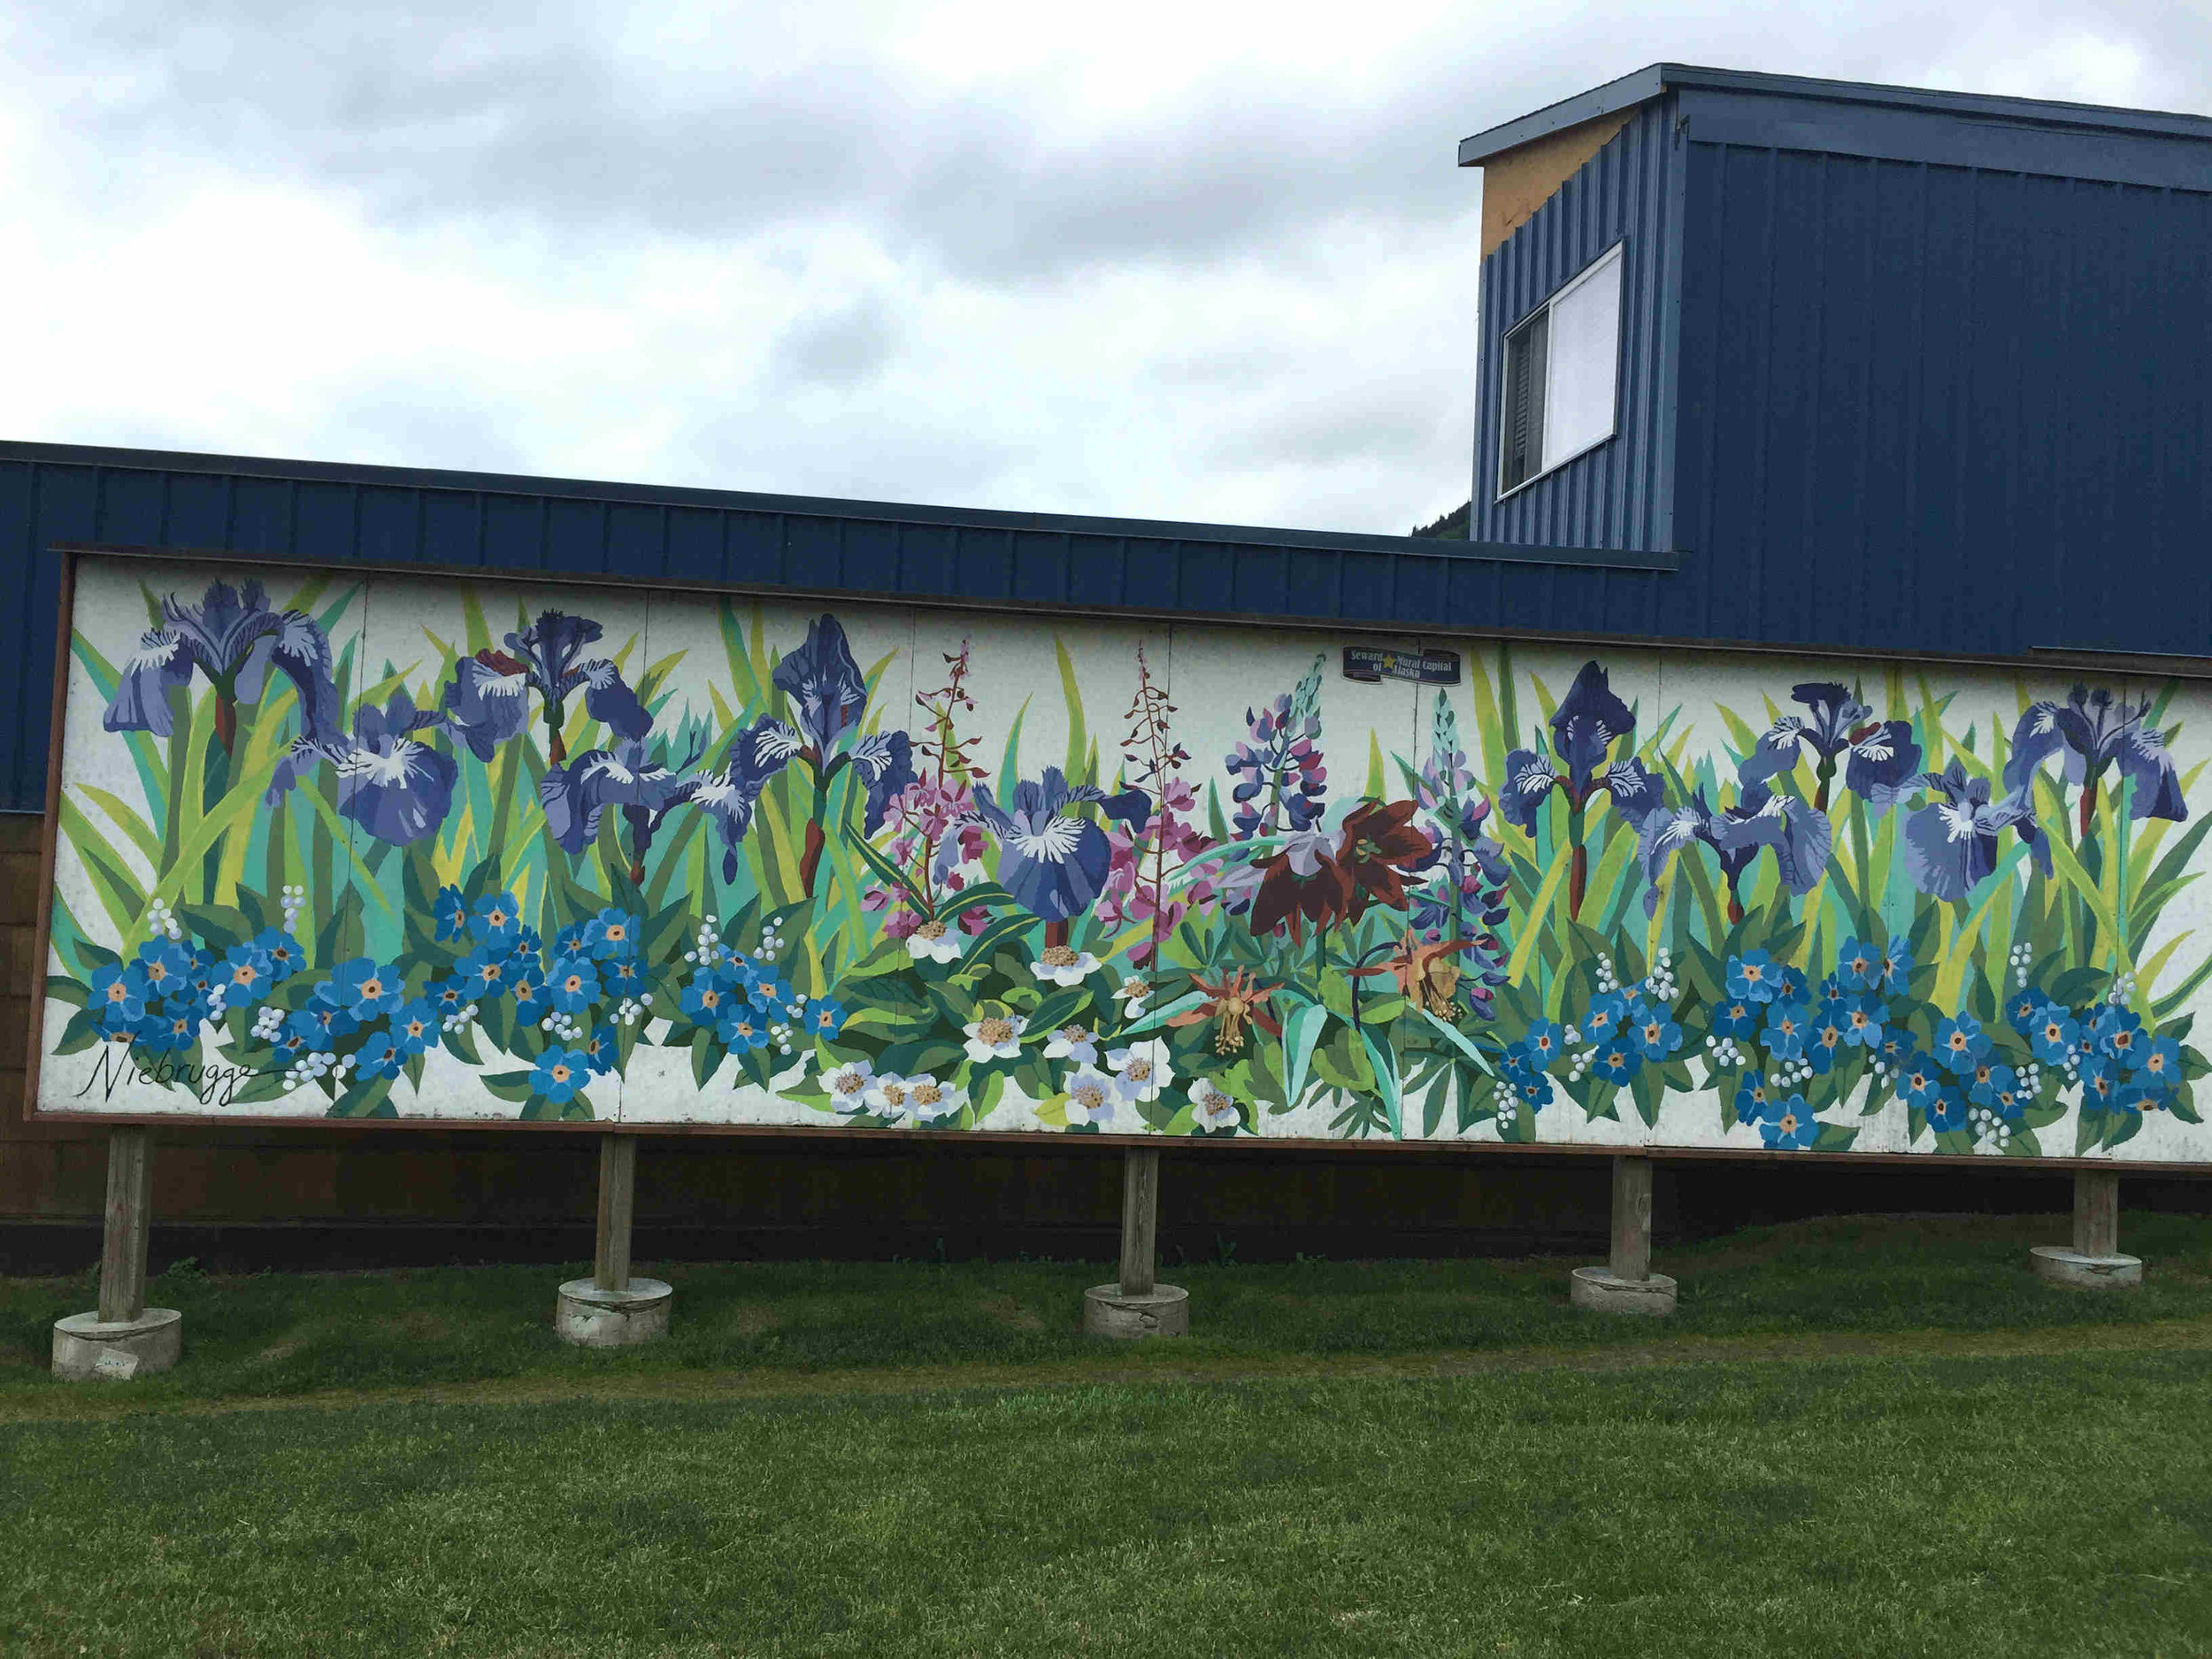 I've counted 35 murals. Did I miss any?